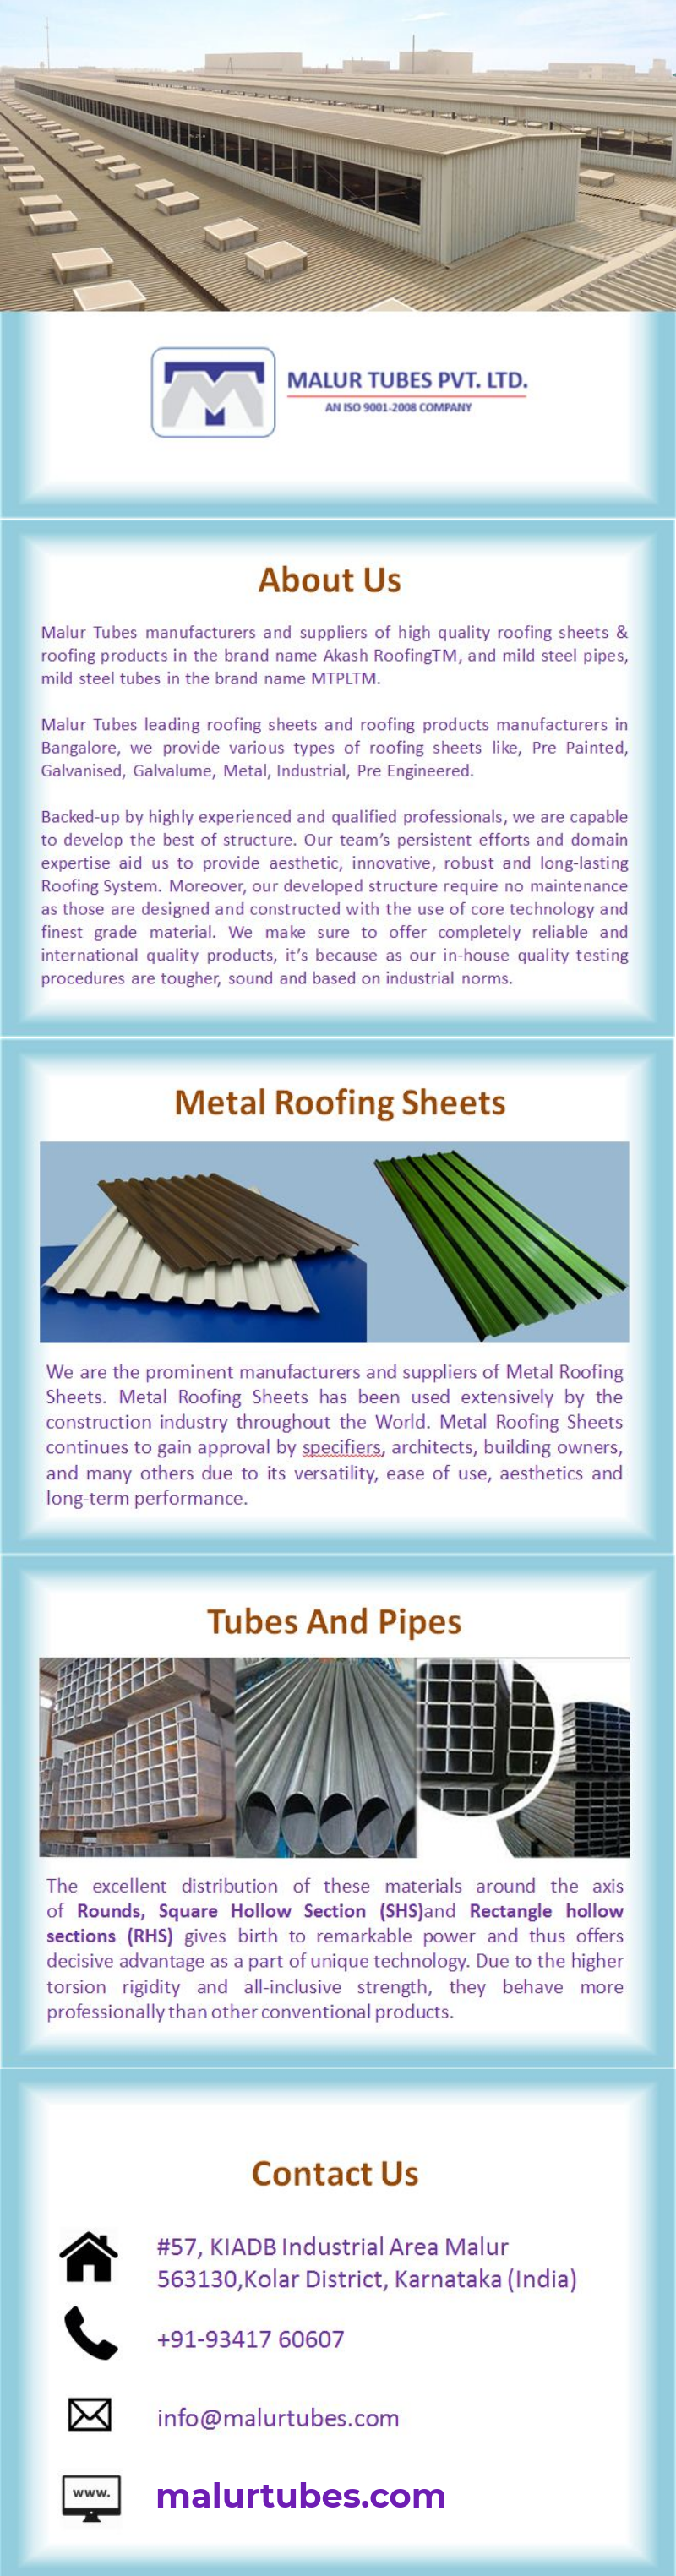 We Provide The Crimping Roofing Sheets In India Our Products Are Extremely Appreciated For Their Durability High Roofing Sheets Steel Roofing Sheets Roofing